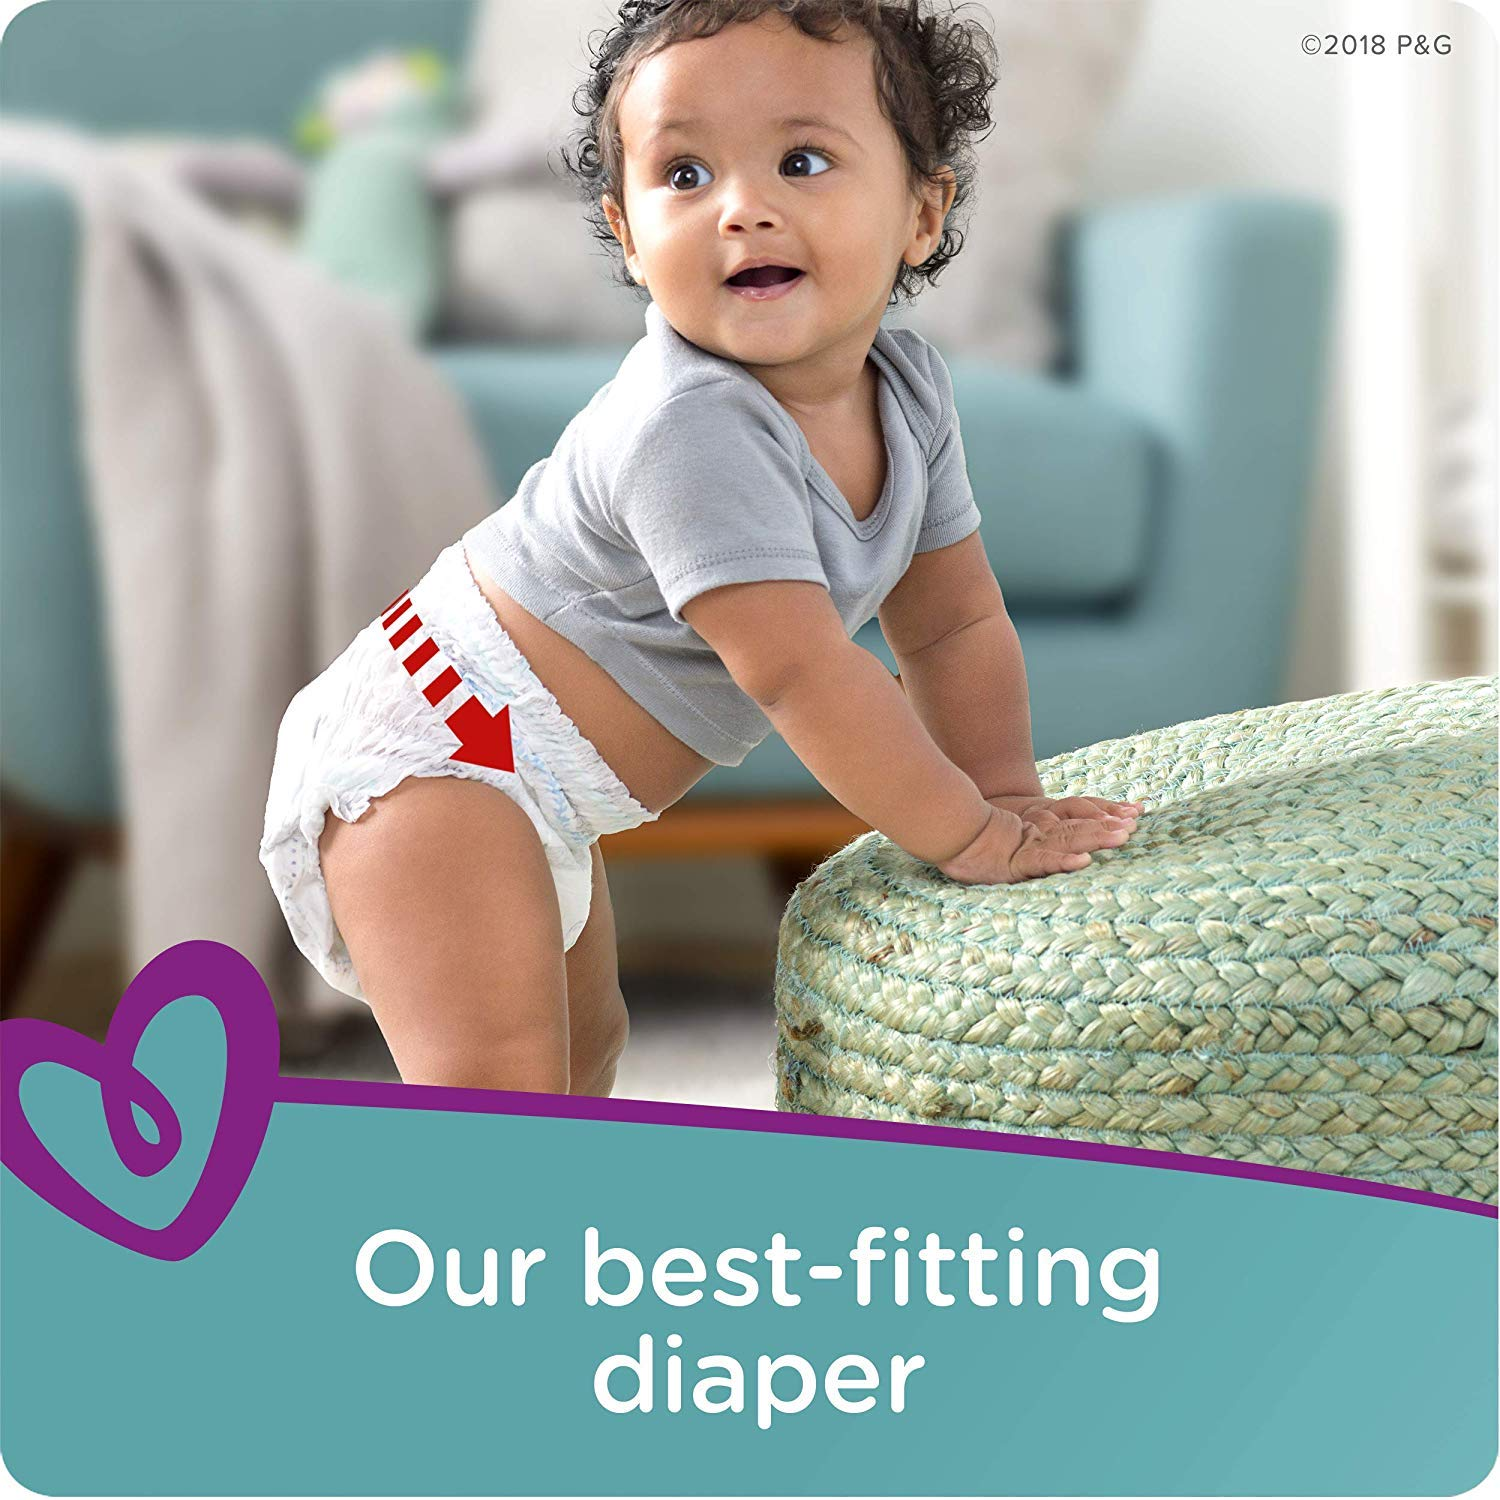 336 Count Cruisers 360˚ Fit Disposable Baby Diapers with Stretchy Waistband Pampers Pull On Diapers Size 3 156 Count ONE Month Supply with Baby Wipes Sensitive 6X Pop-Top Packs